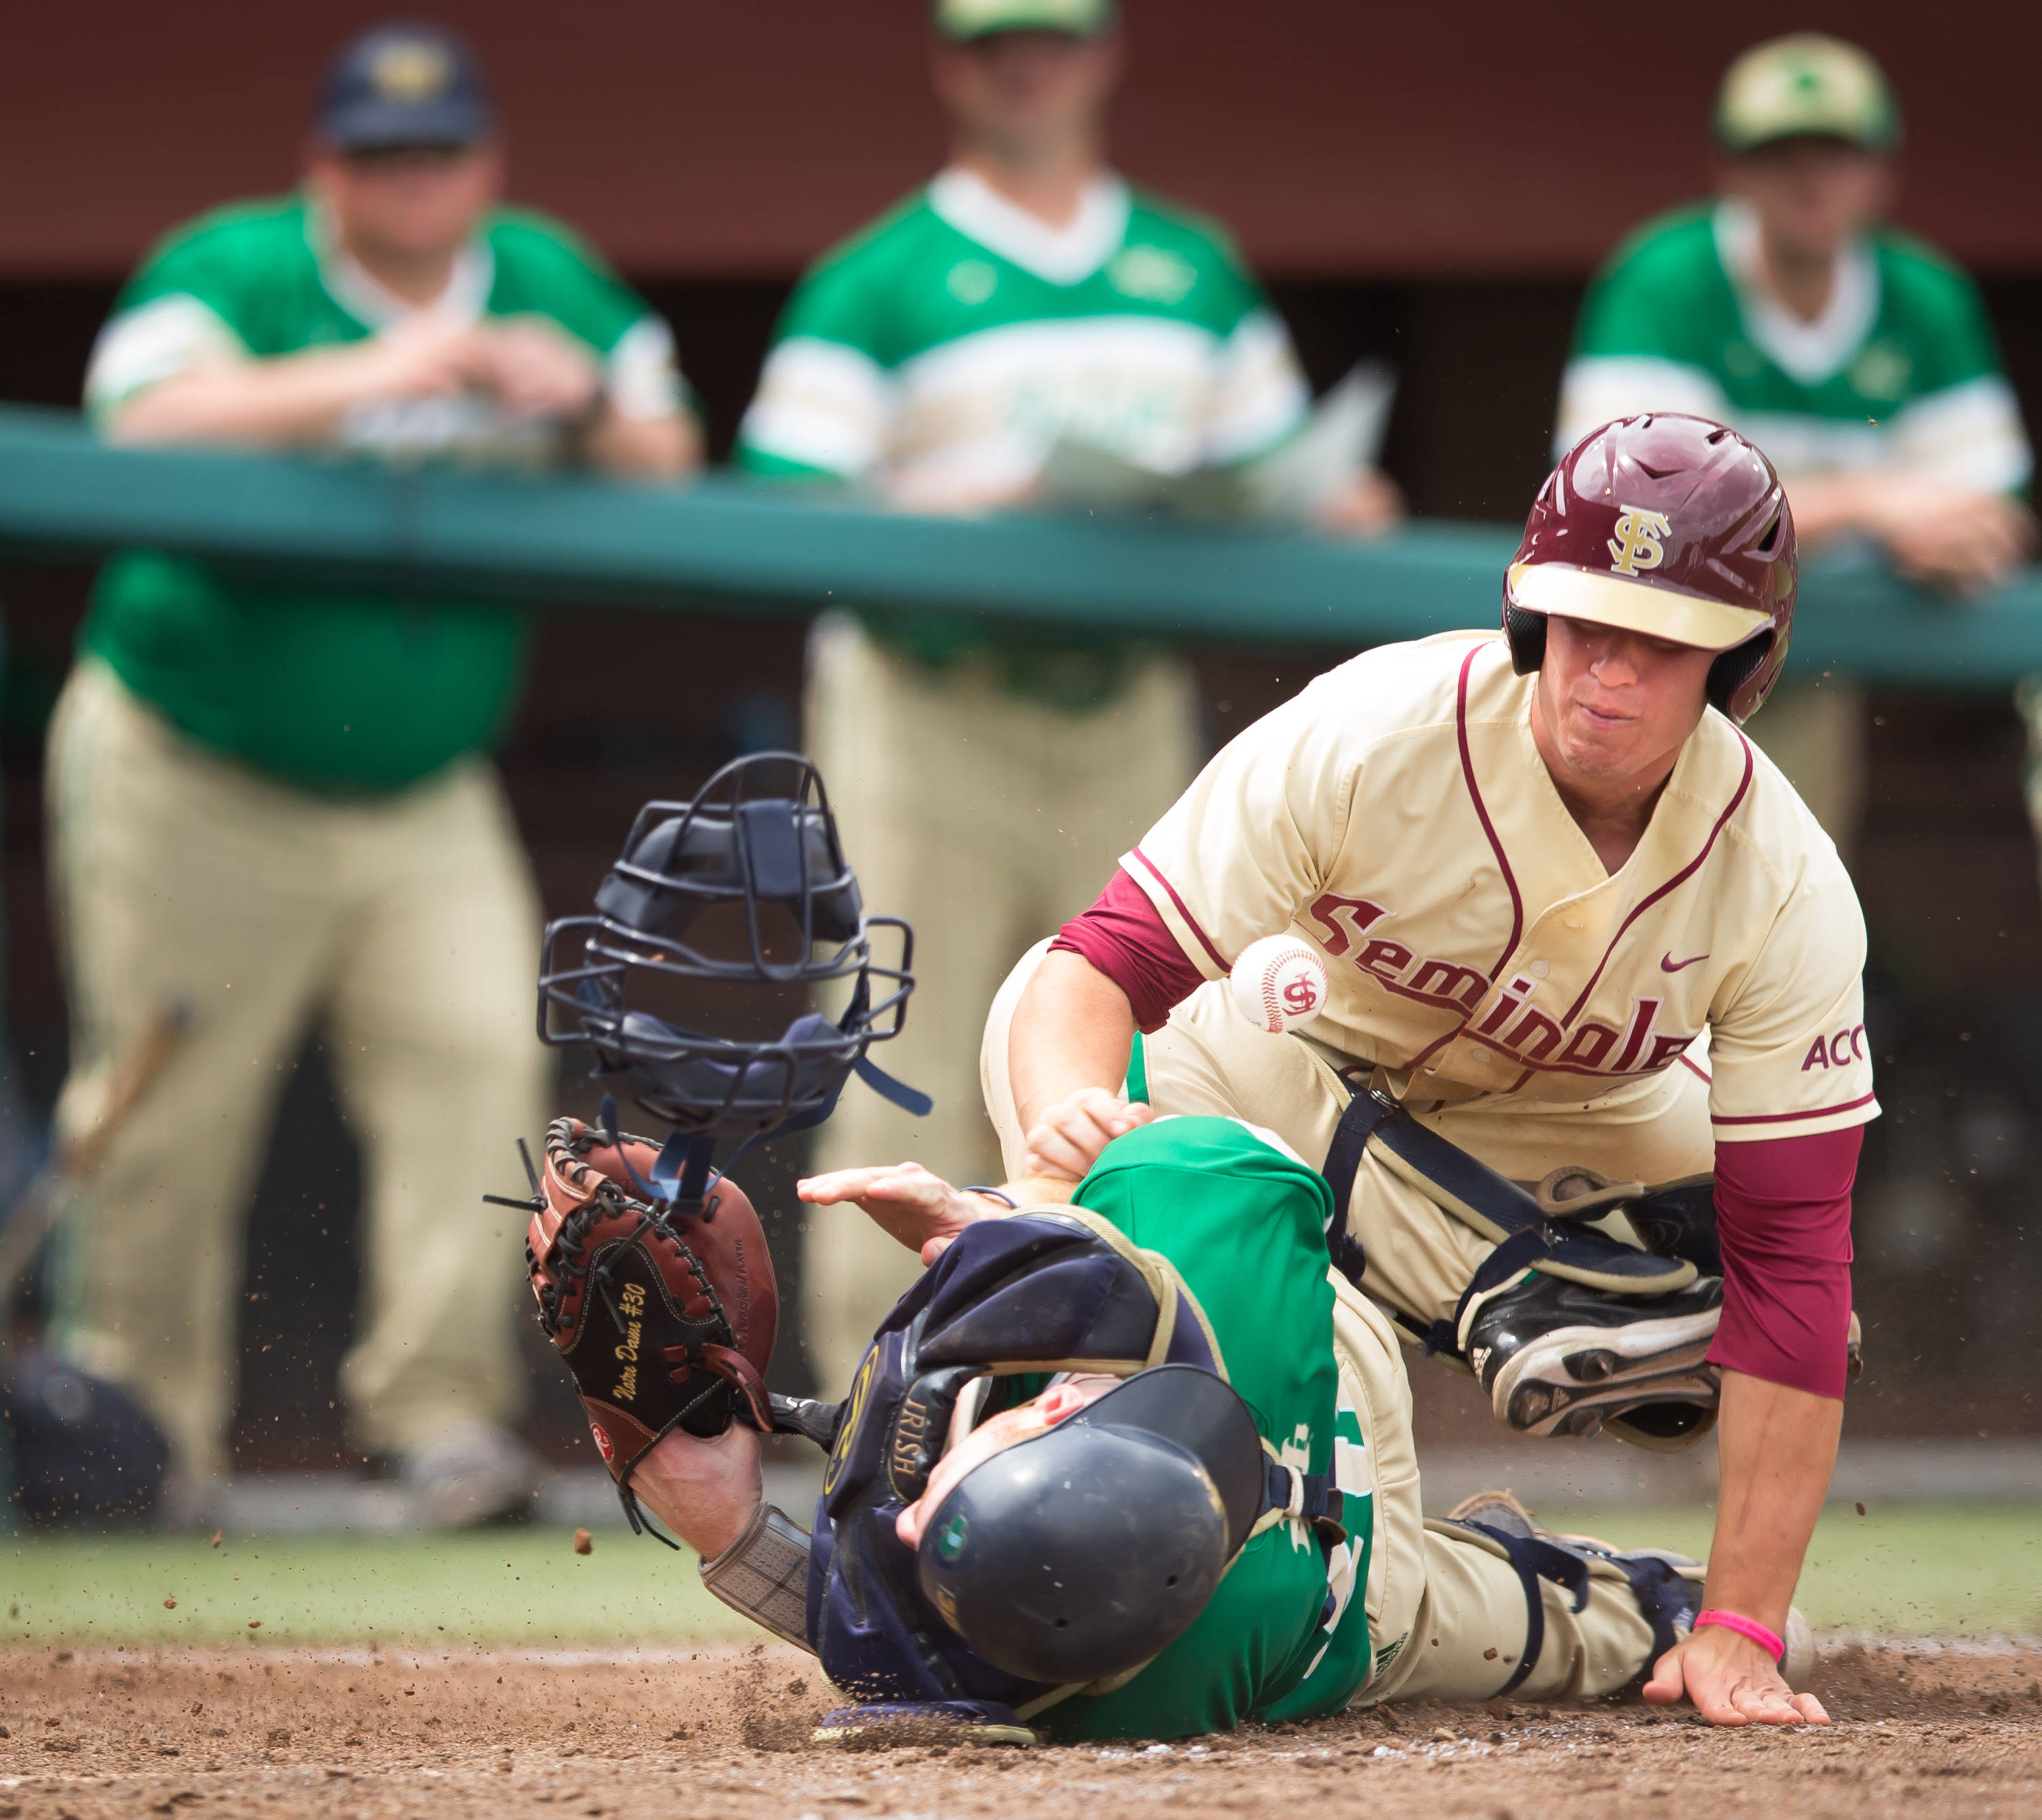 Josh Delph (2) scores after colliding with the Notre Dame catcher.